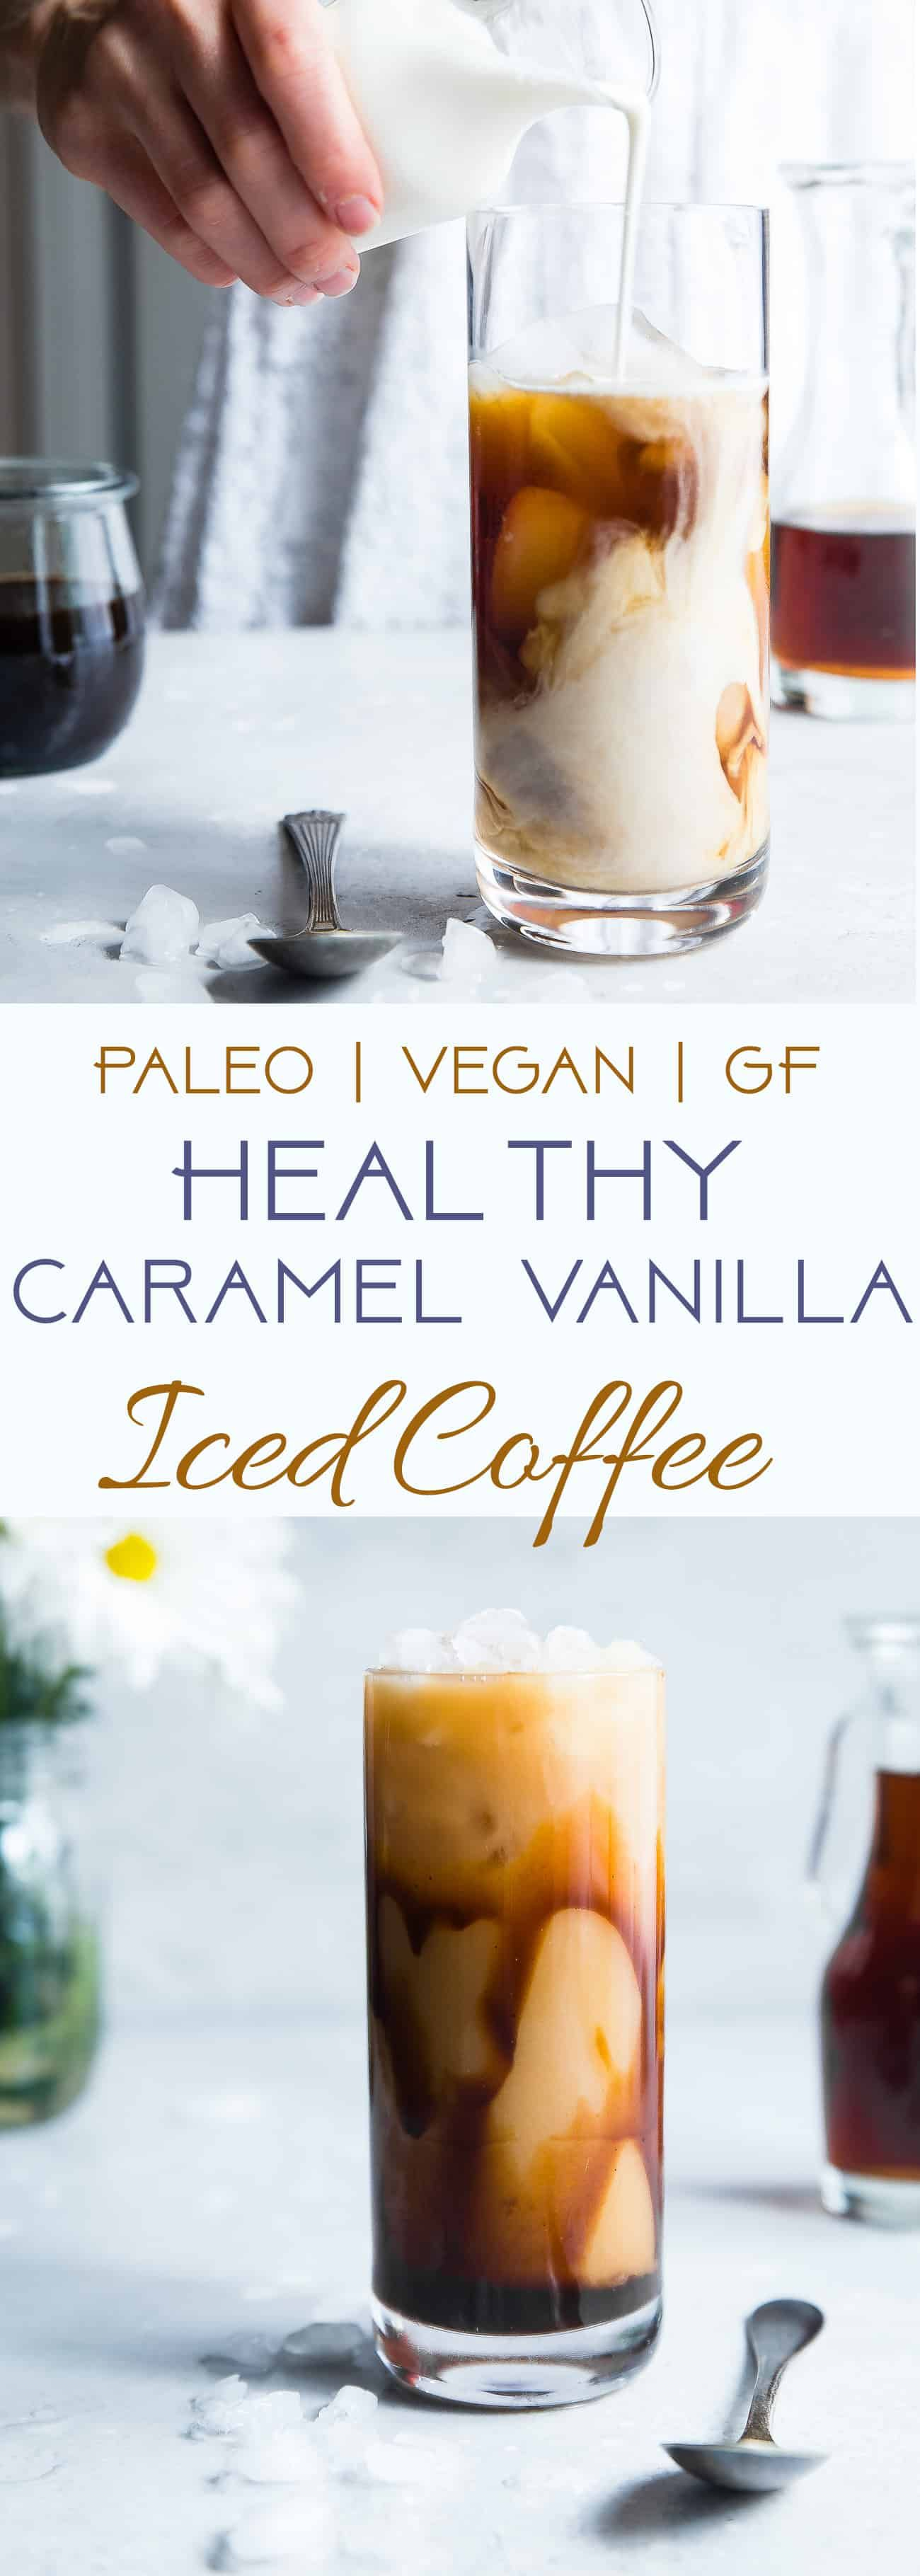 Photo of 11 Ways to Make Iced Coffee Taste Even Better